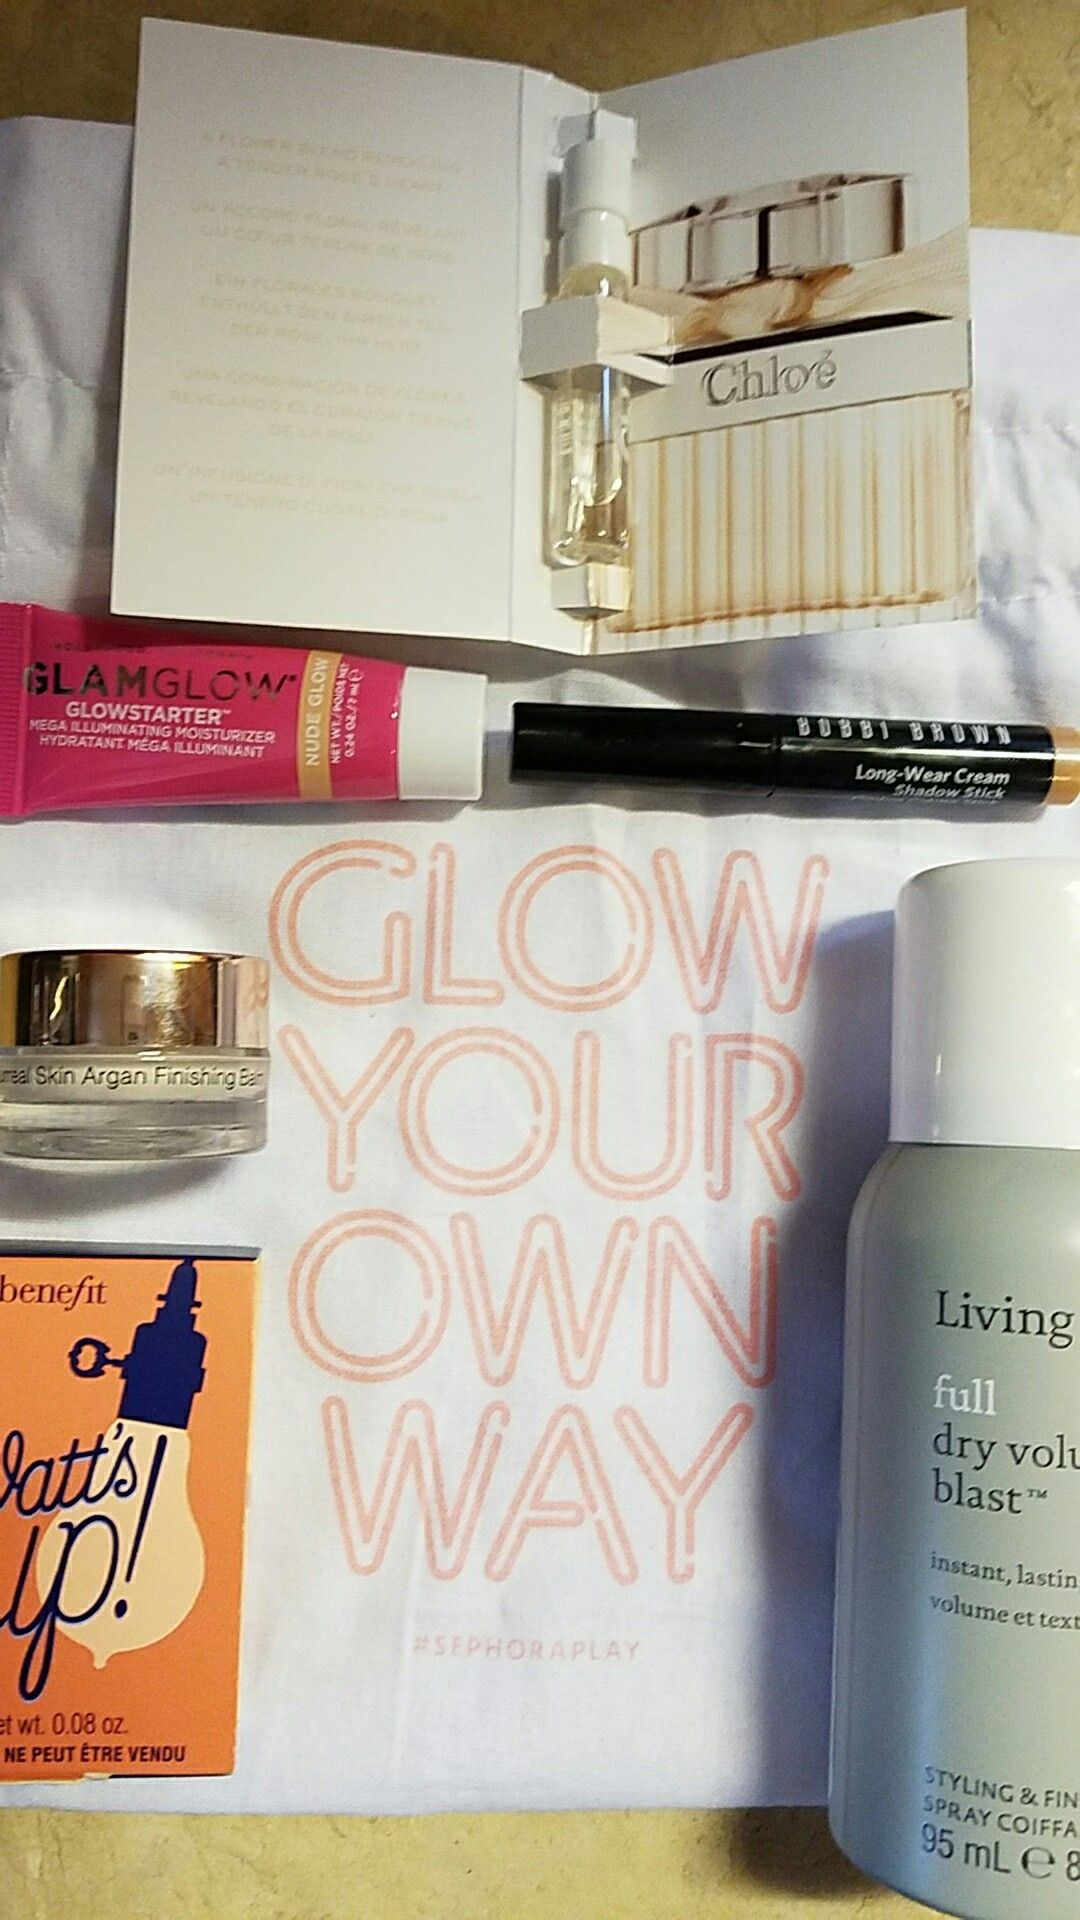 March 2017 Play! By Sephora box. It's all about the glow